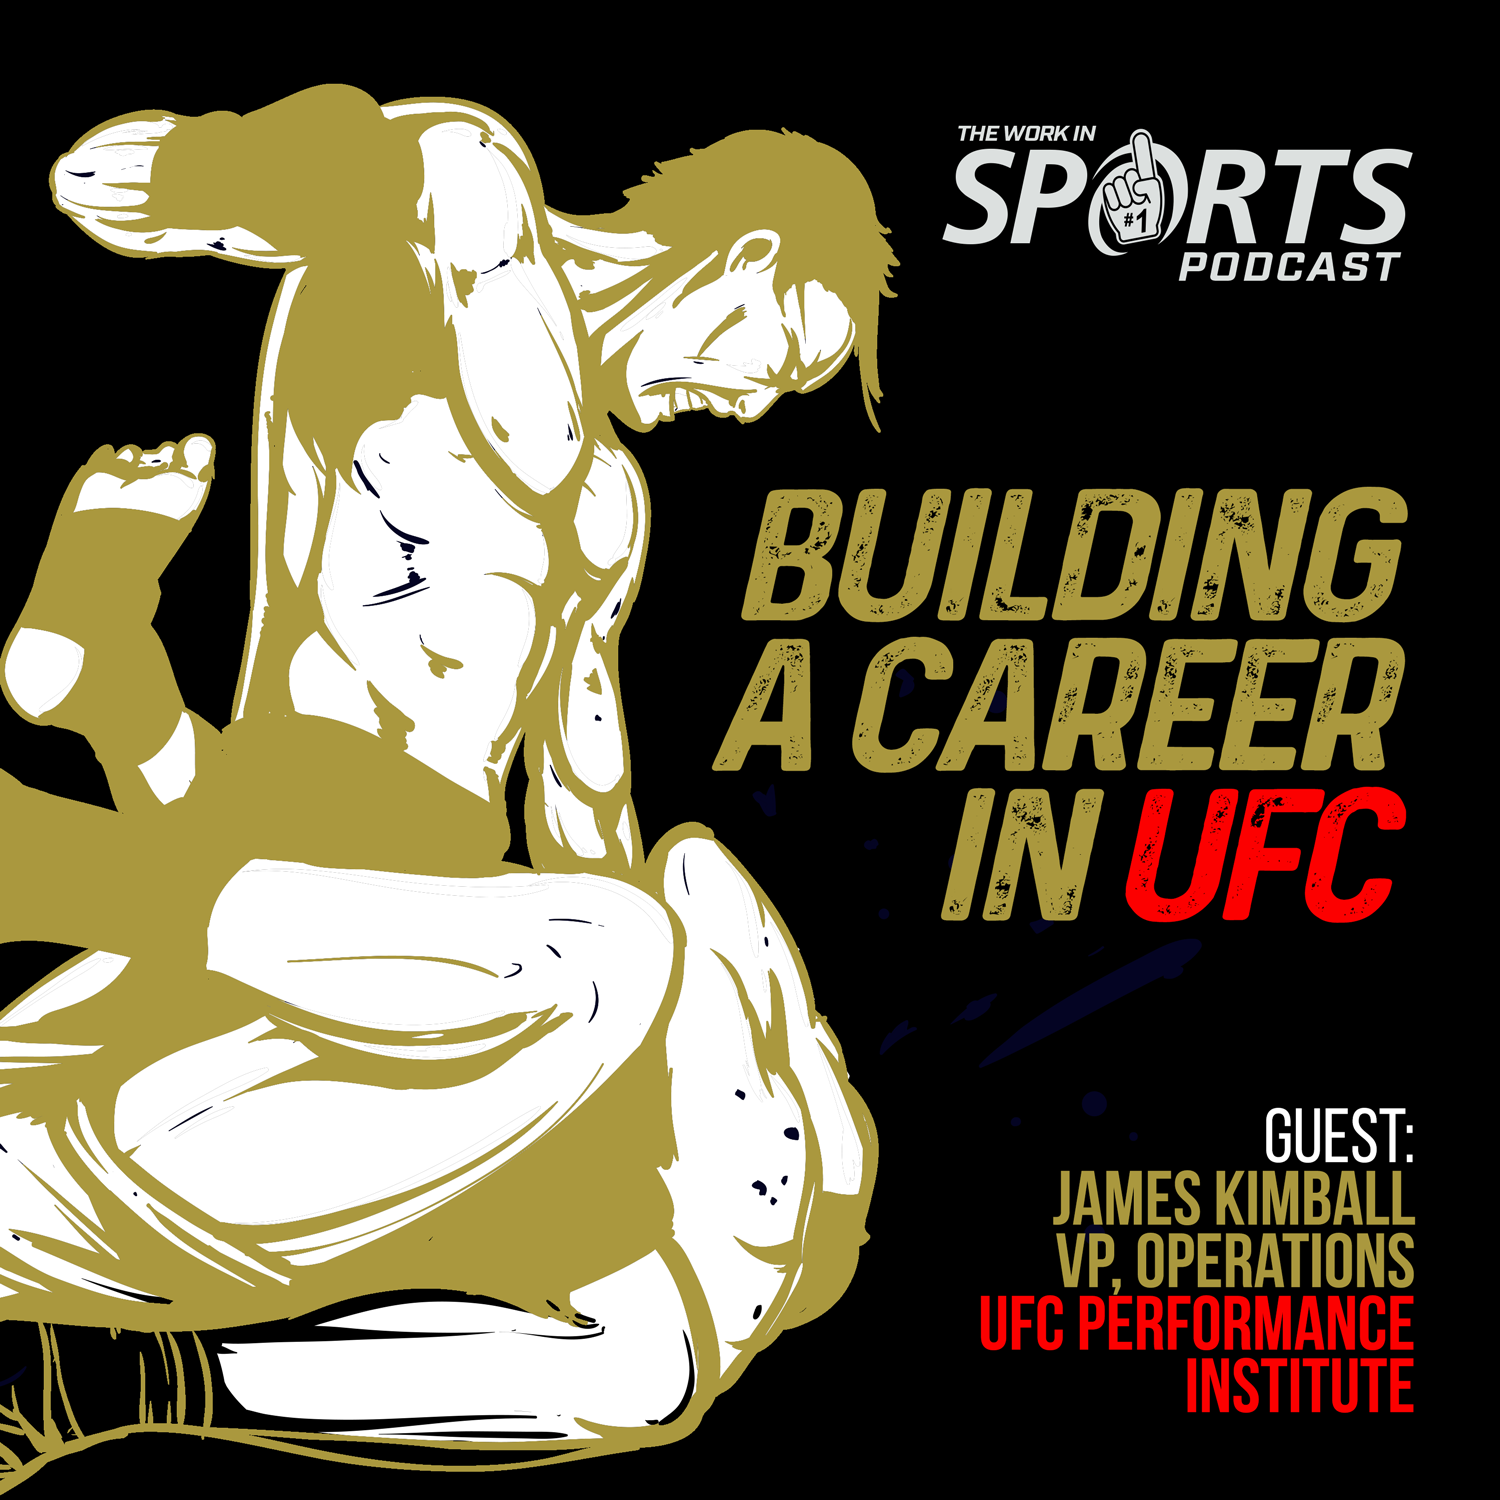 James Kimball UFC Performance Institute vp operations